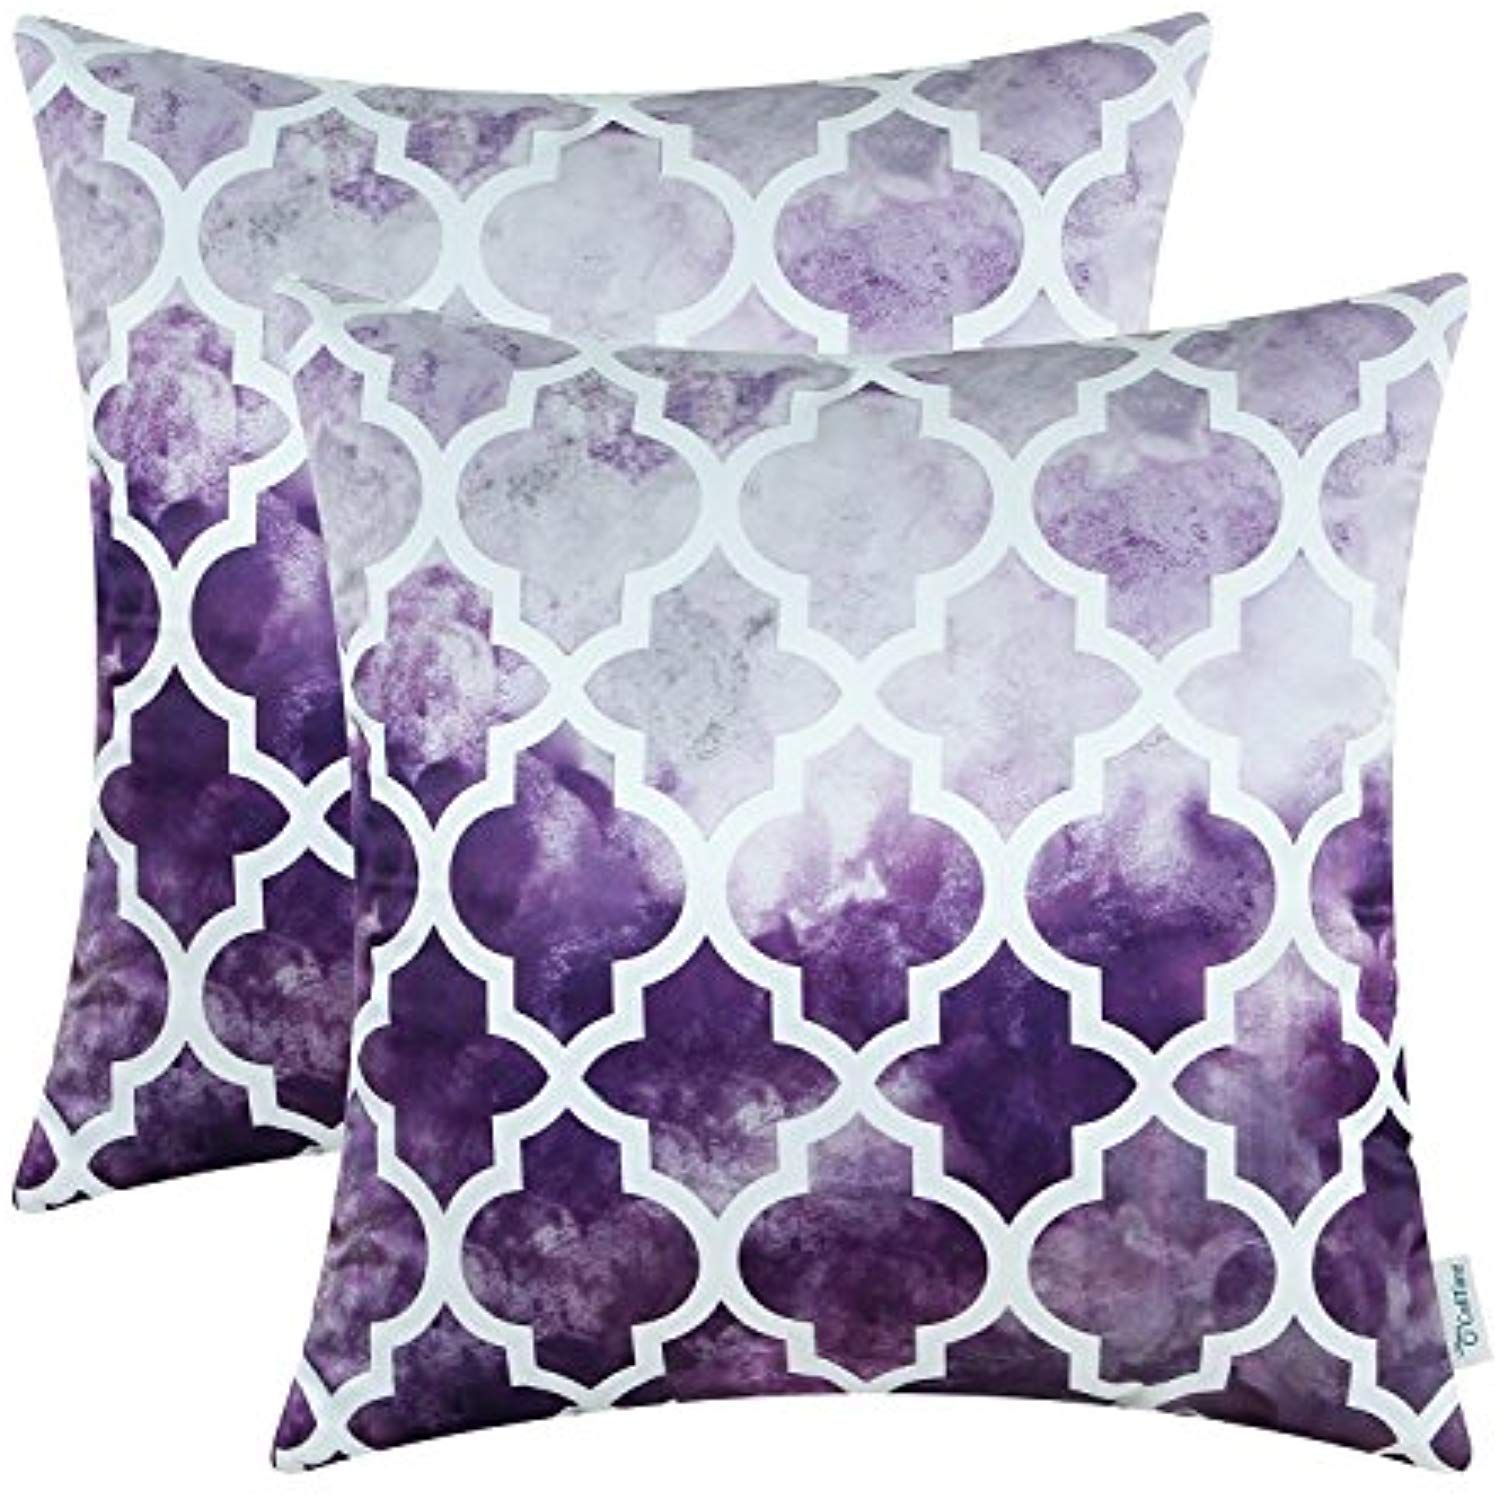 calitime pack of 2 silky throw pillow covers cases for couch sofa rh pinterest com